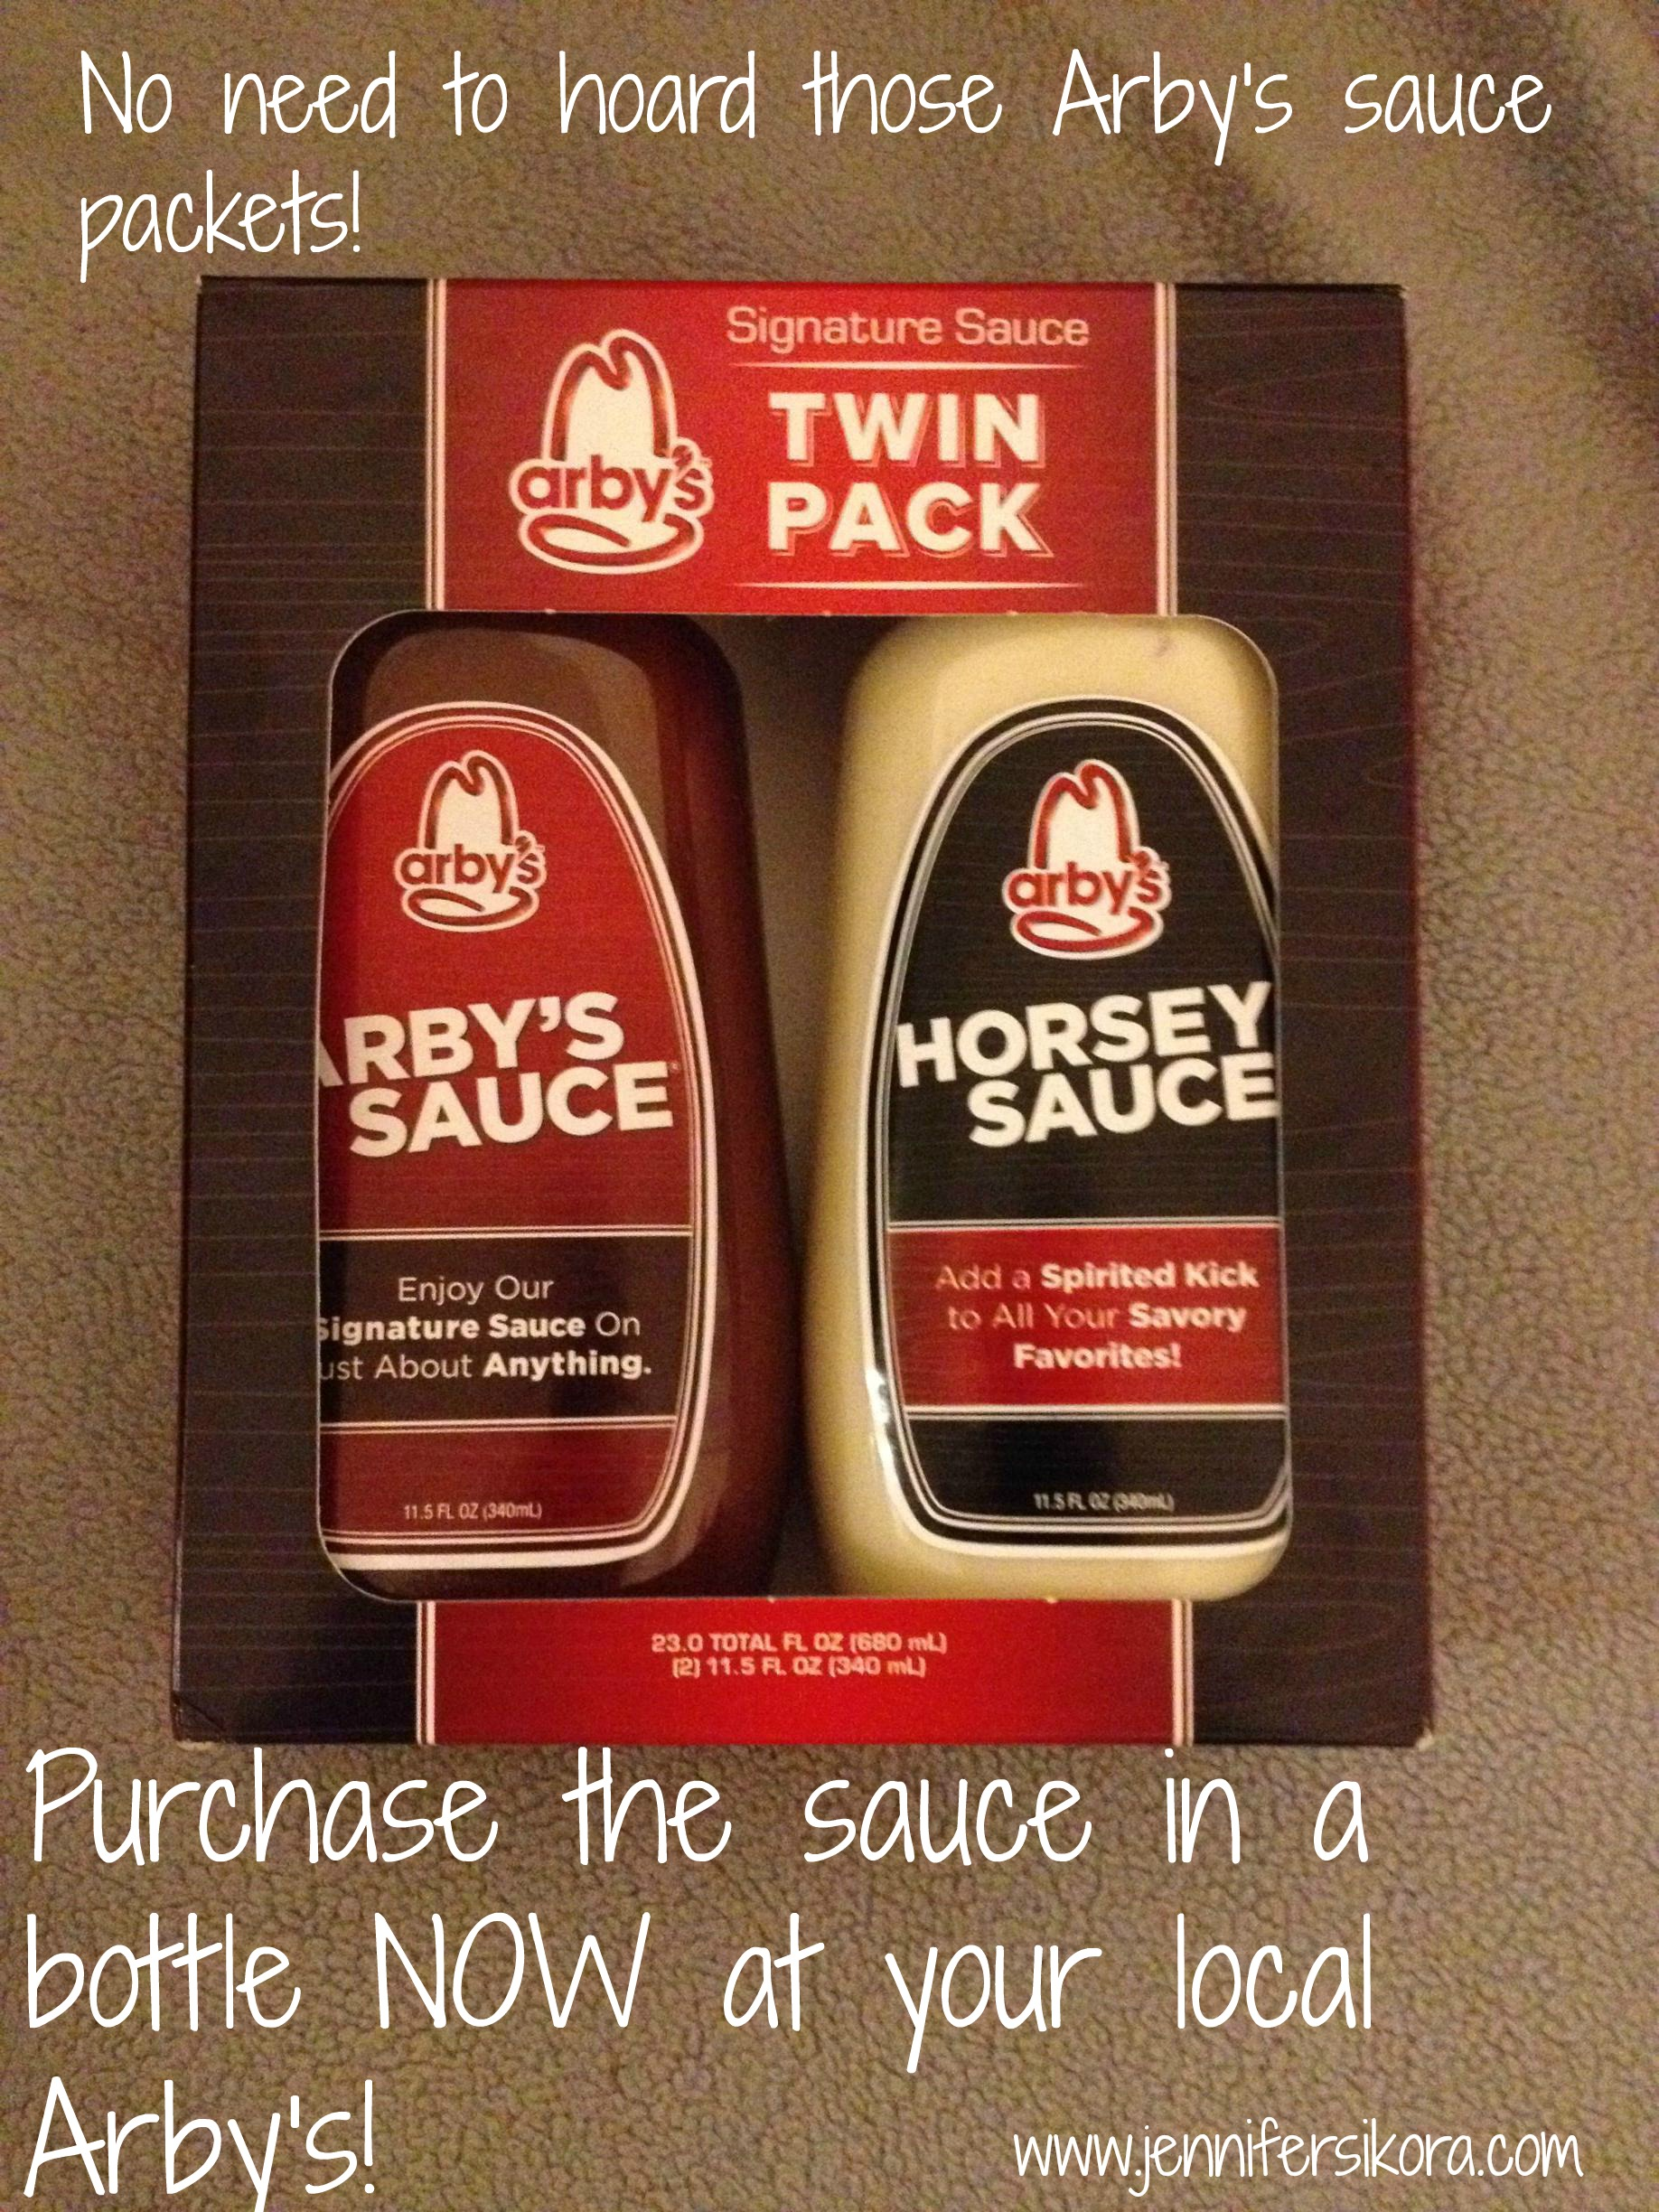 Arbys King Hawaiian Roast Beef and Their Signature Sauce –oh yeah!